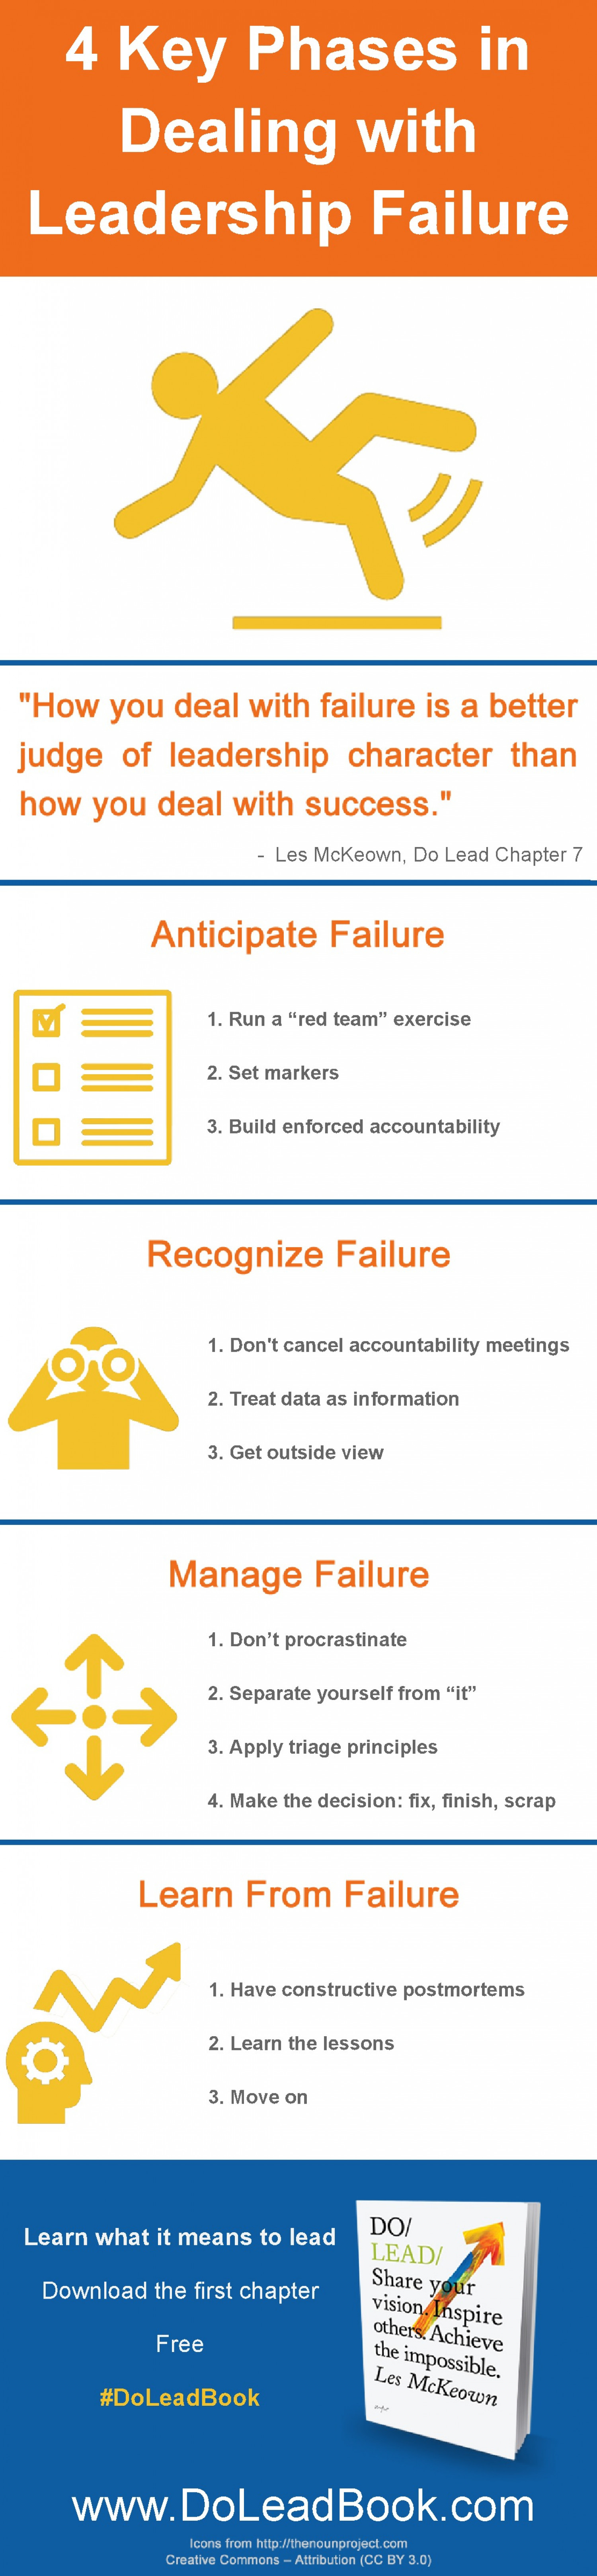 4 Key Phases in Dealing with Leadership Failure Infographic